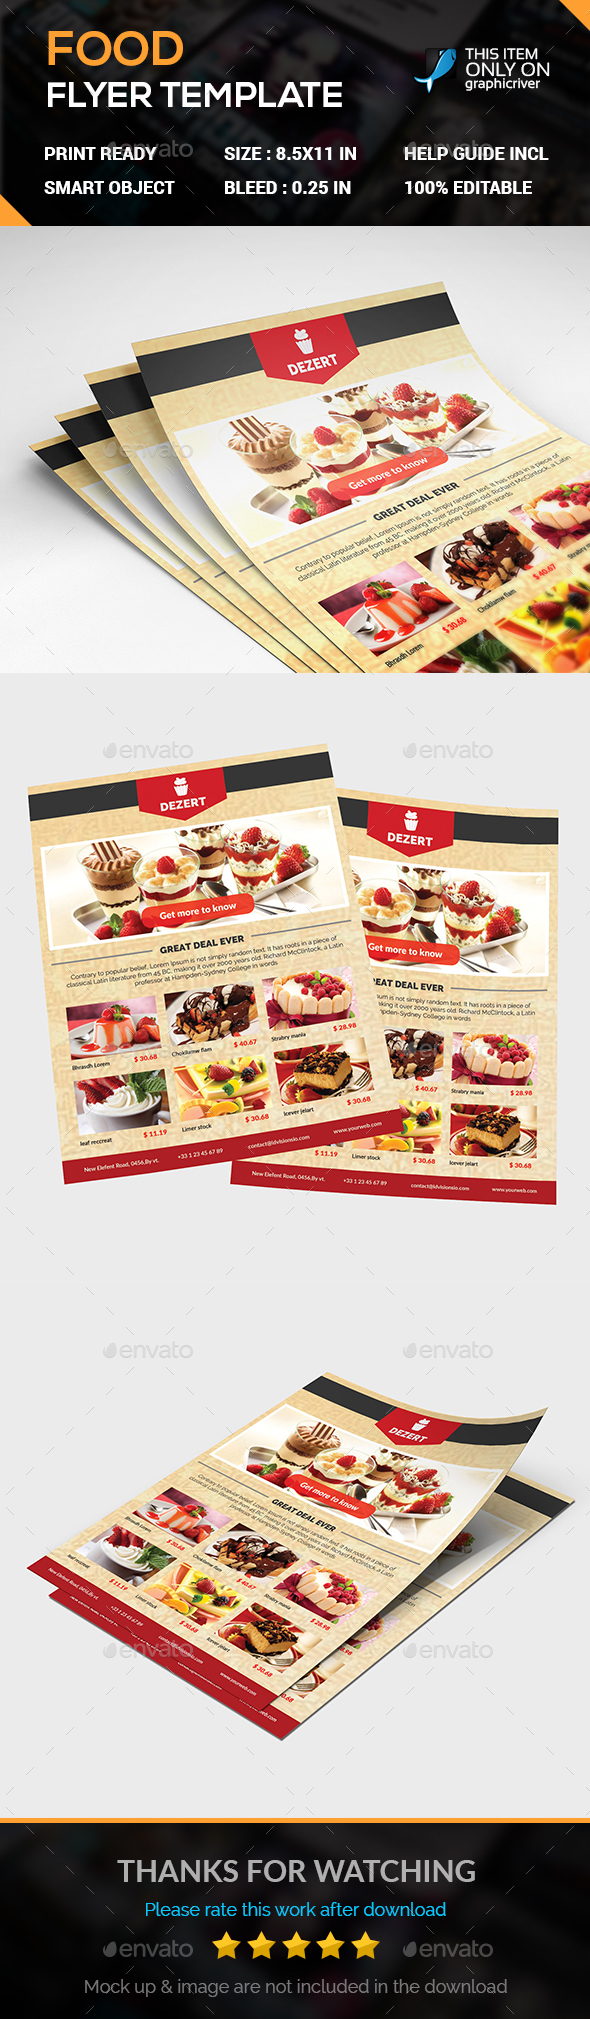 FOOD Flyer - Flyers Print Templates